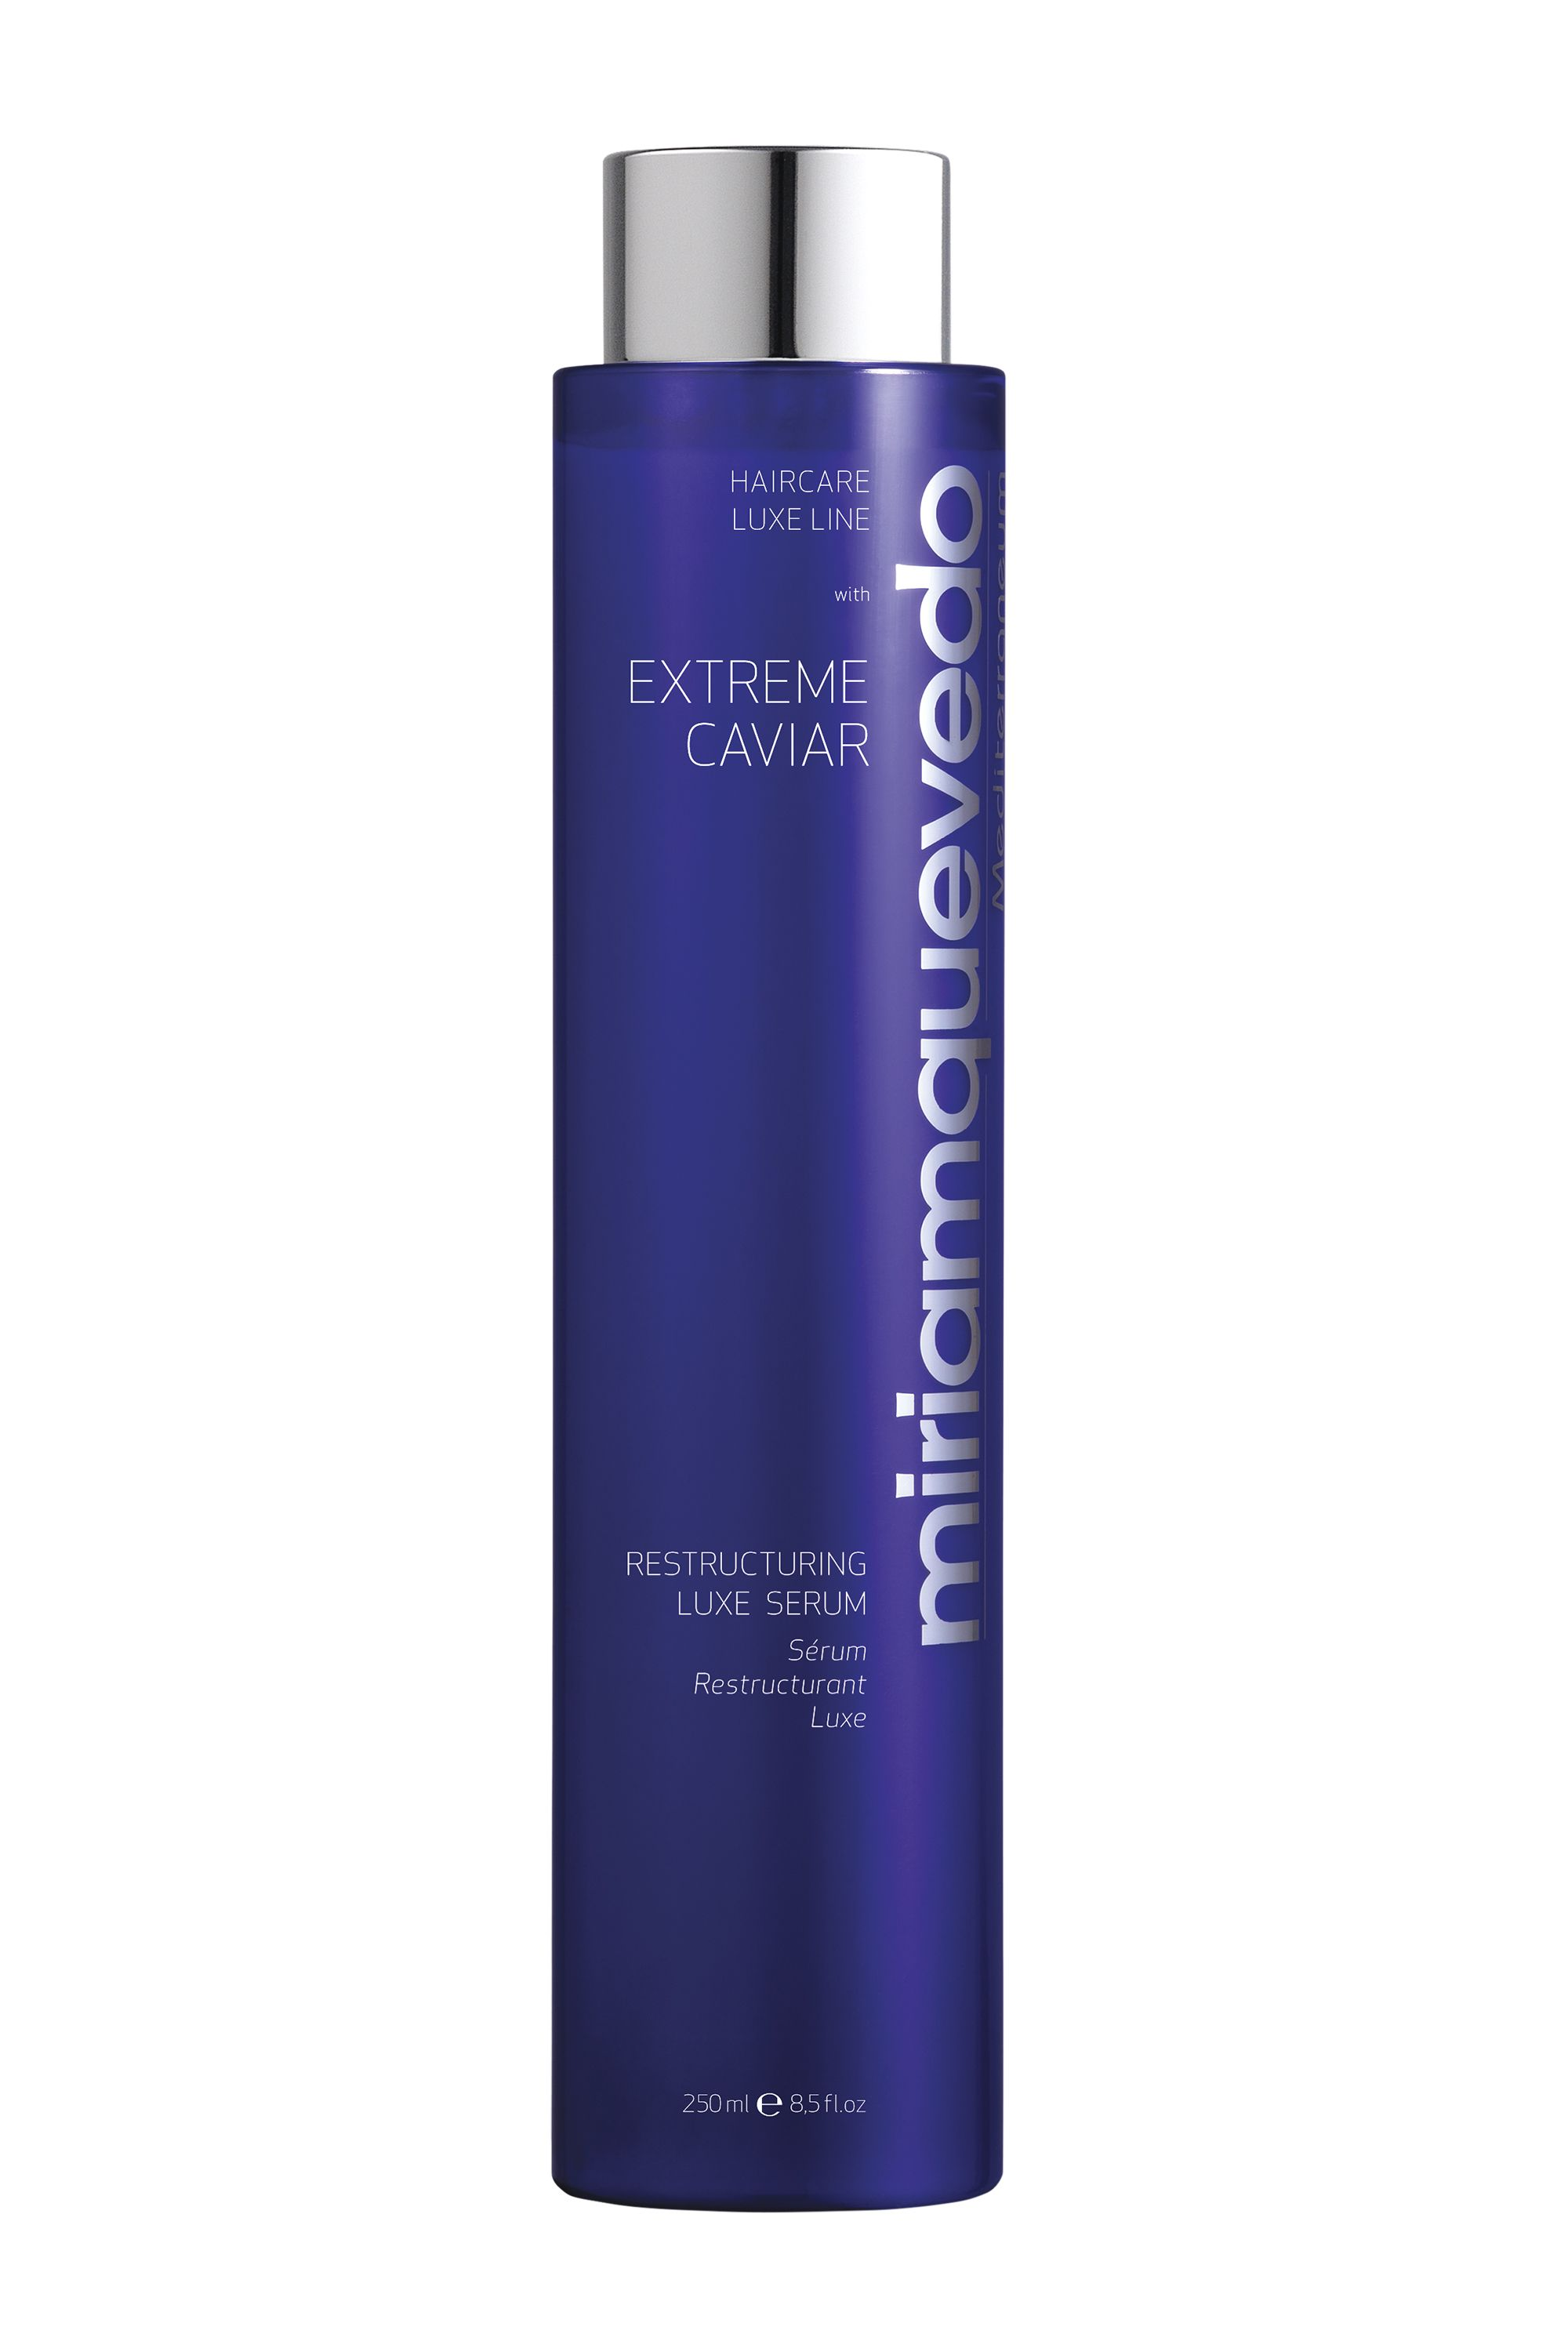 "<p><strong>Recommended by Palo Alto's Space NK:  </strong>Silicon Valley loves the sleek finish of this ultra-reparative formula (especially great for chemically treated hair). </p><p><em><br></em></p><p><em>$55, <a href=""http://www.spacenk.com/us/en_US/brands/m/miriam-quevedo/extreme-caviar-restructuring-luxe-serum-US300024942.html?cm_mmc=Google+US-_-F3D+-+US